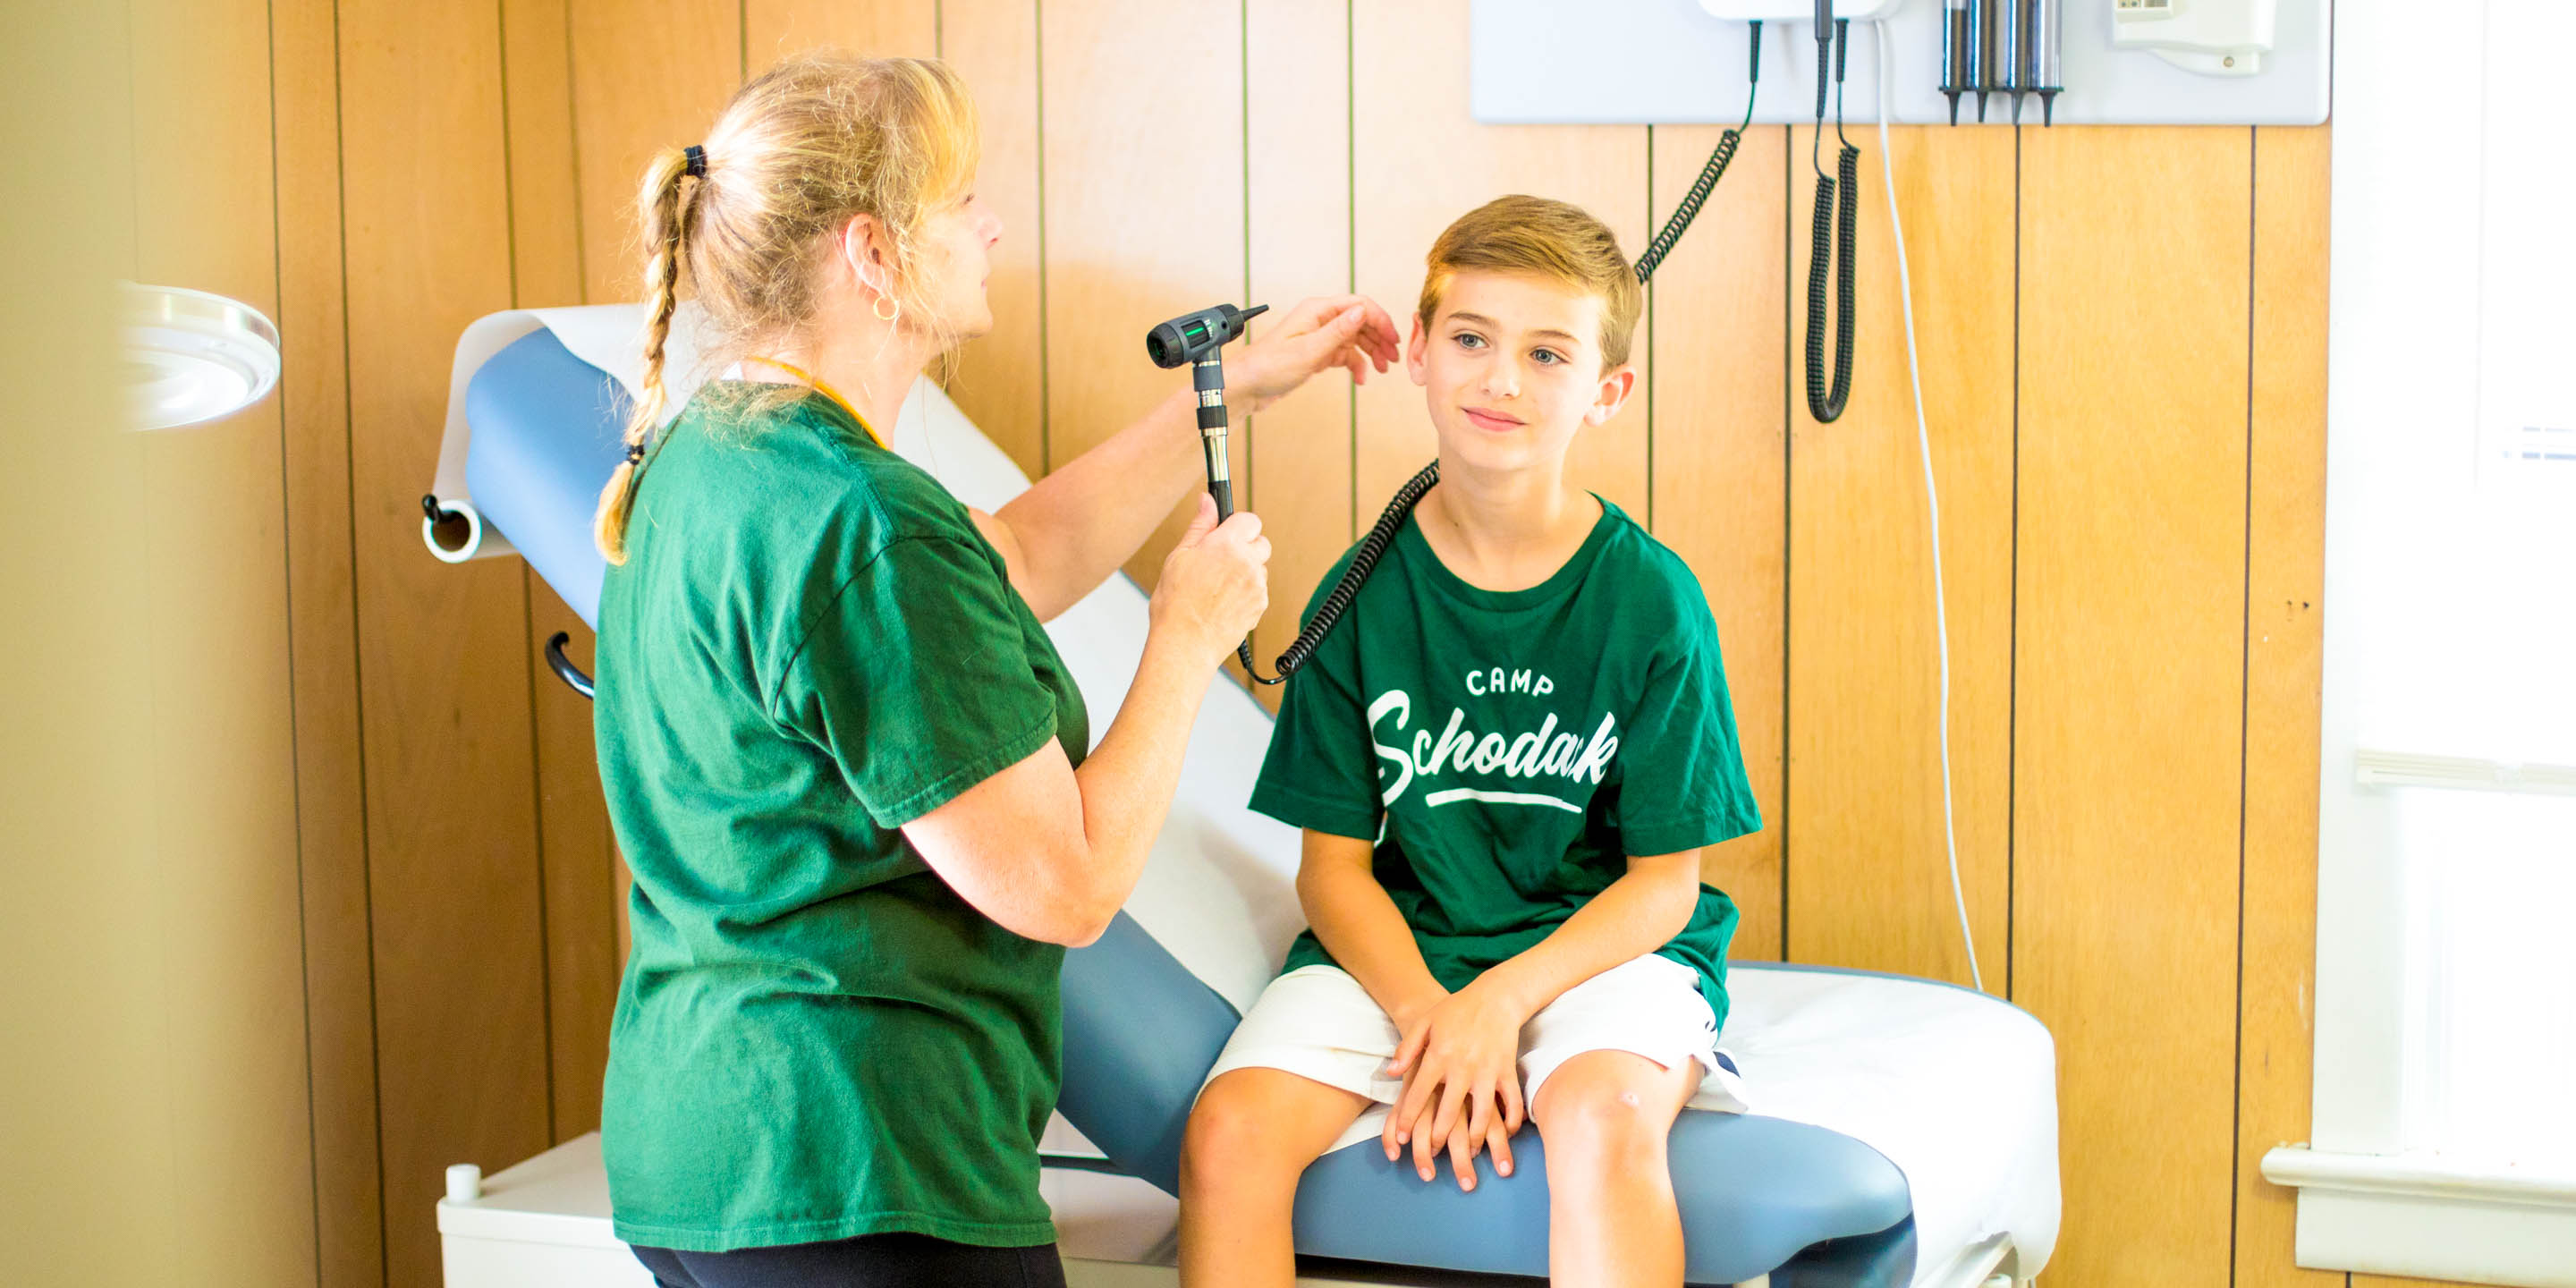 Summer camp nurse performs health check-up on camper